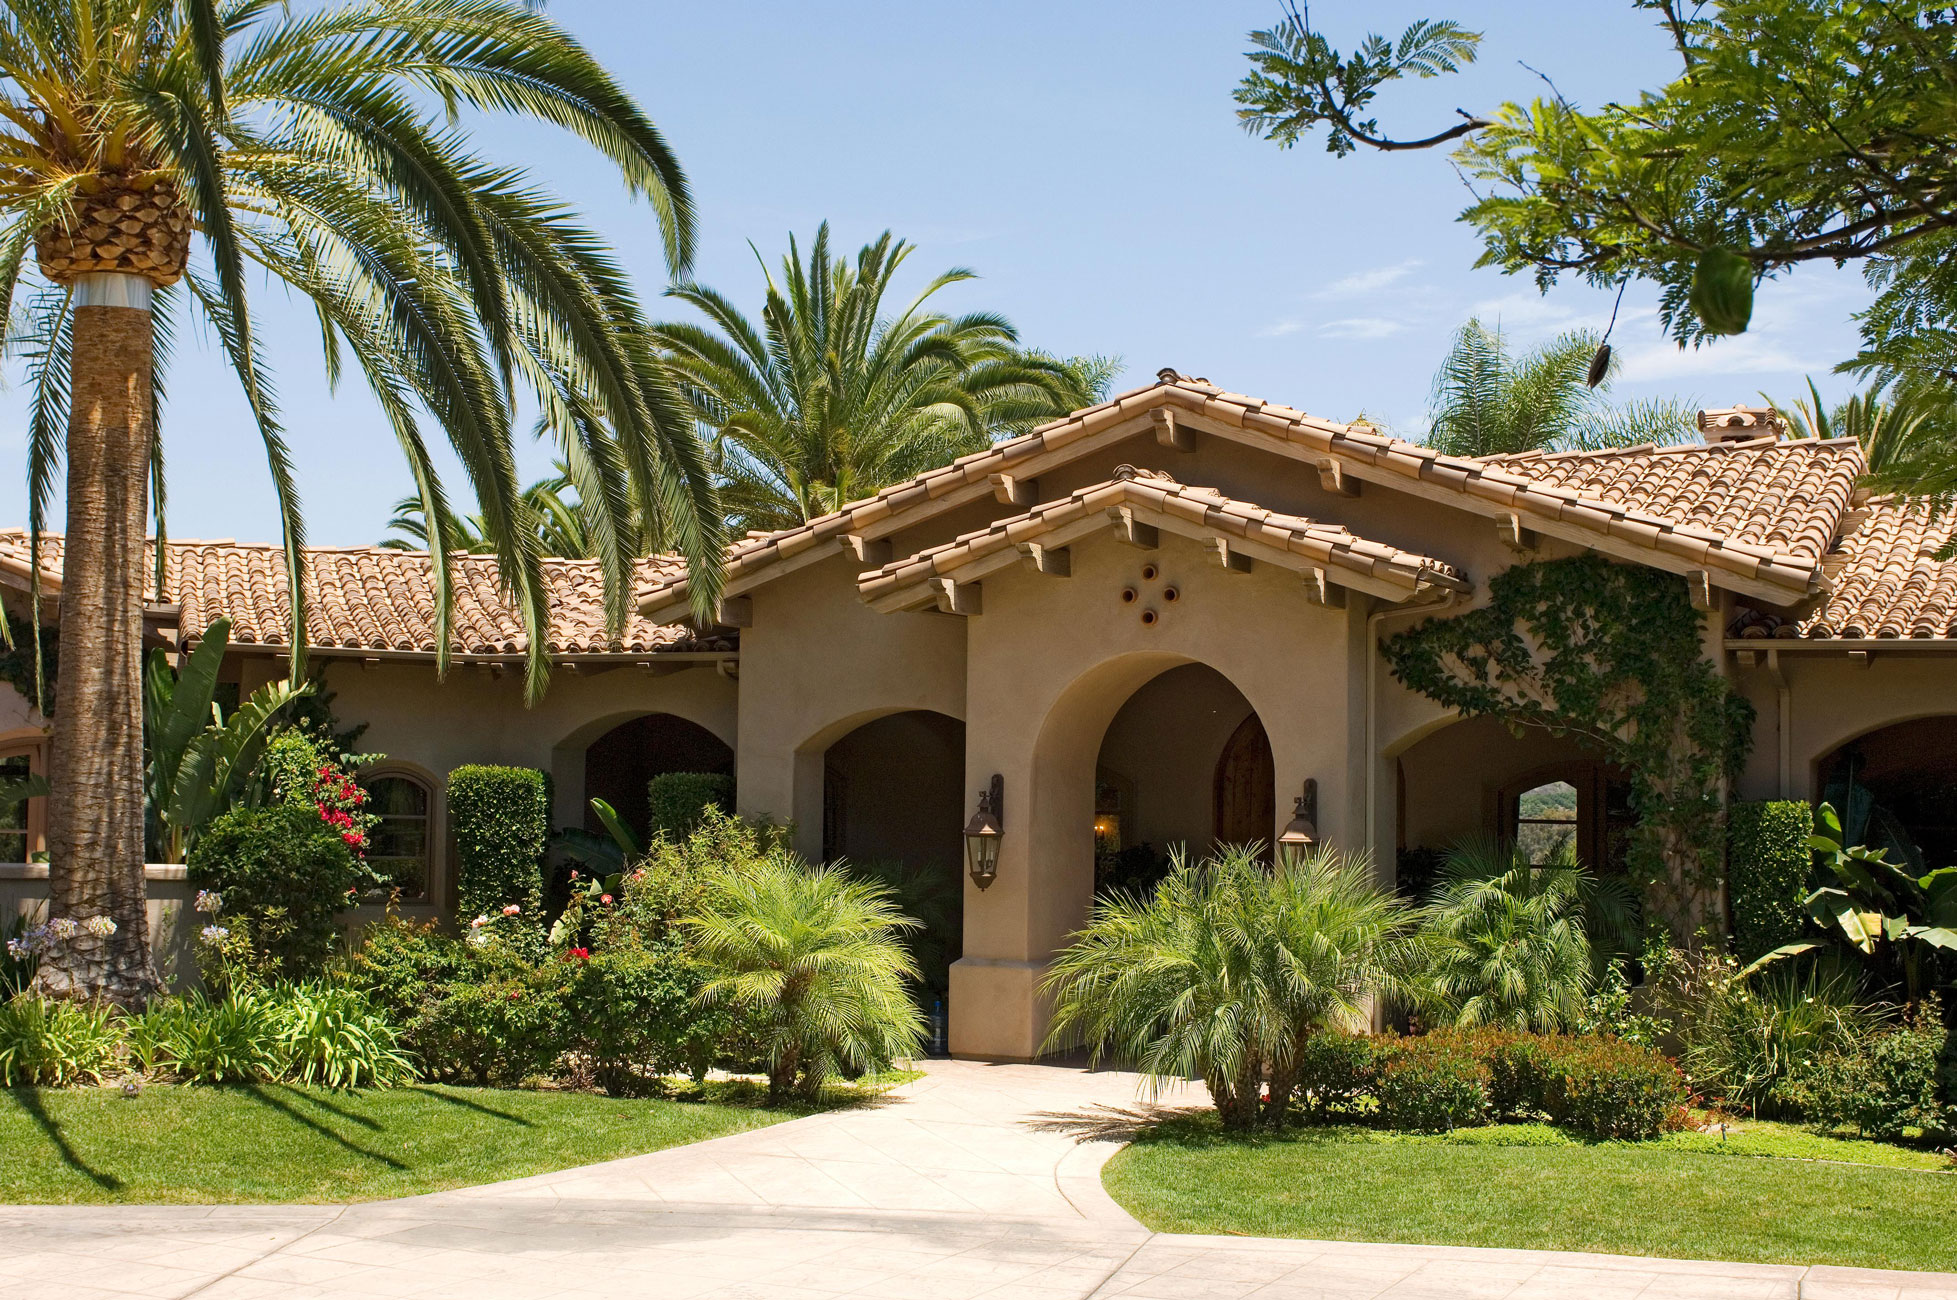 Mediterranean-style ranch exterior with tropical plants